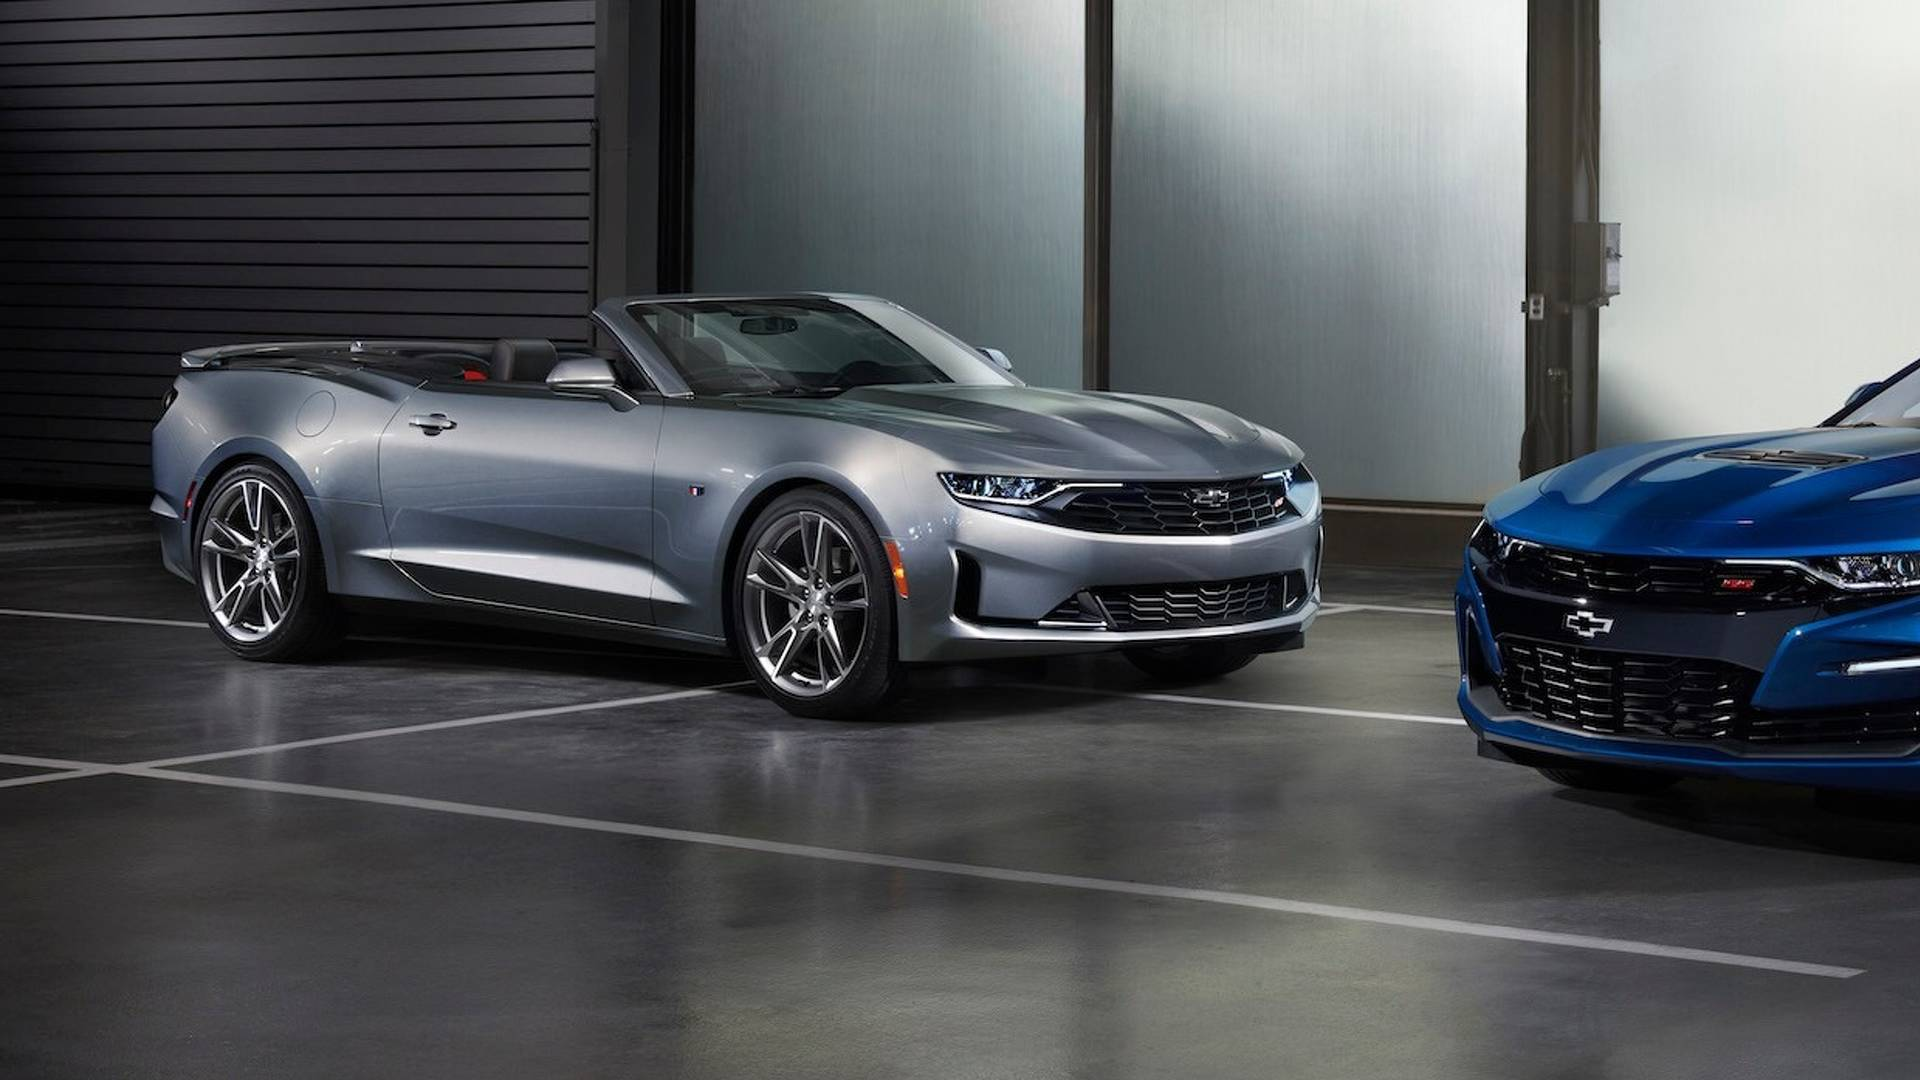 2015 Chevy Camaro Imagined: Is It a Batmobile? - autoevolution